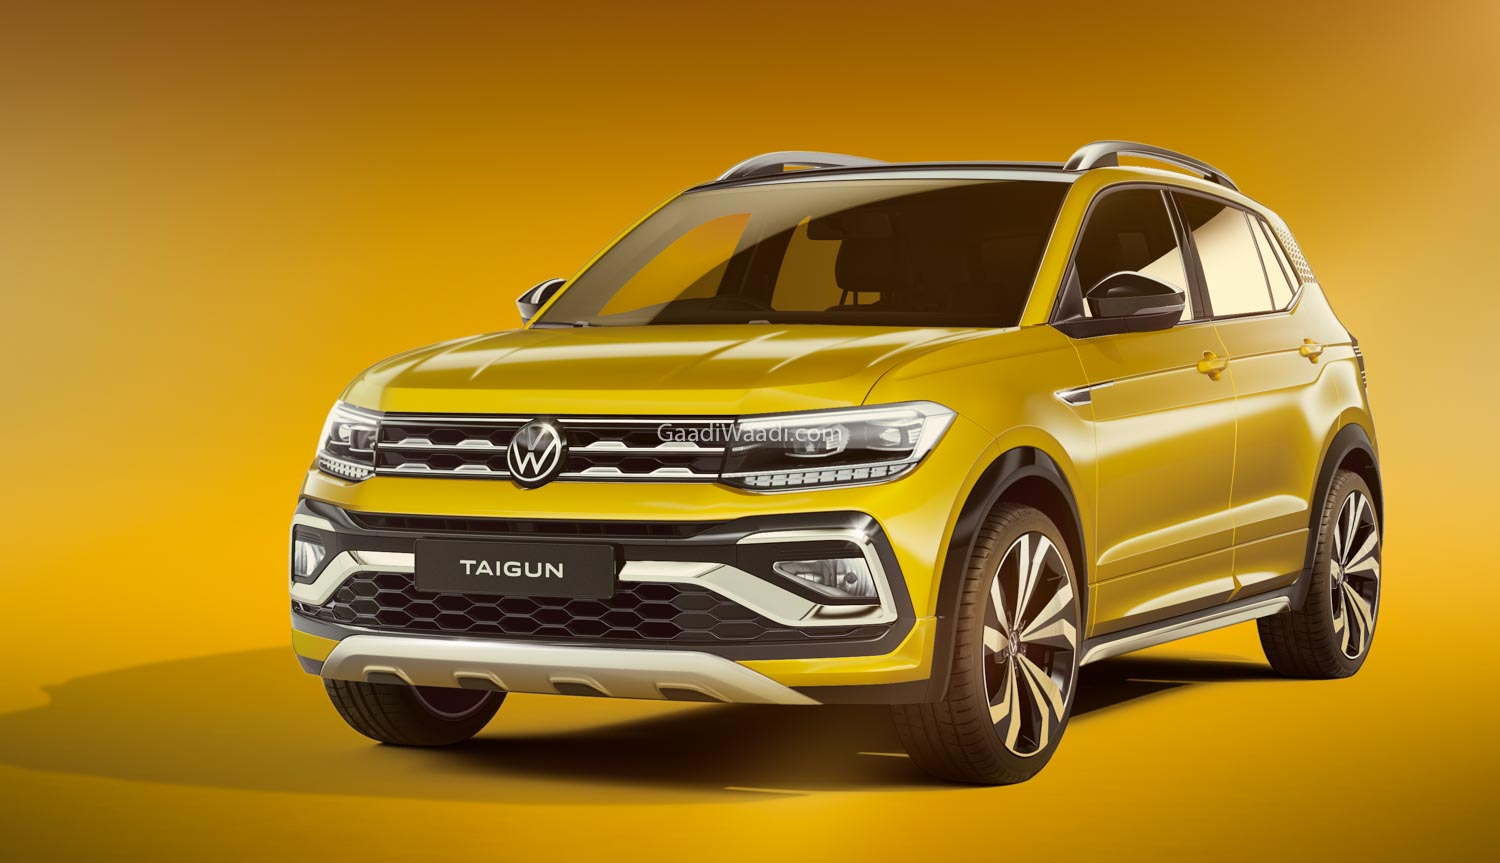 The Volkswagen Taigun GT features a sportier design and a 1.5L turbocharged engine